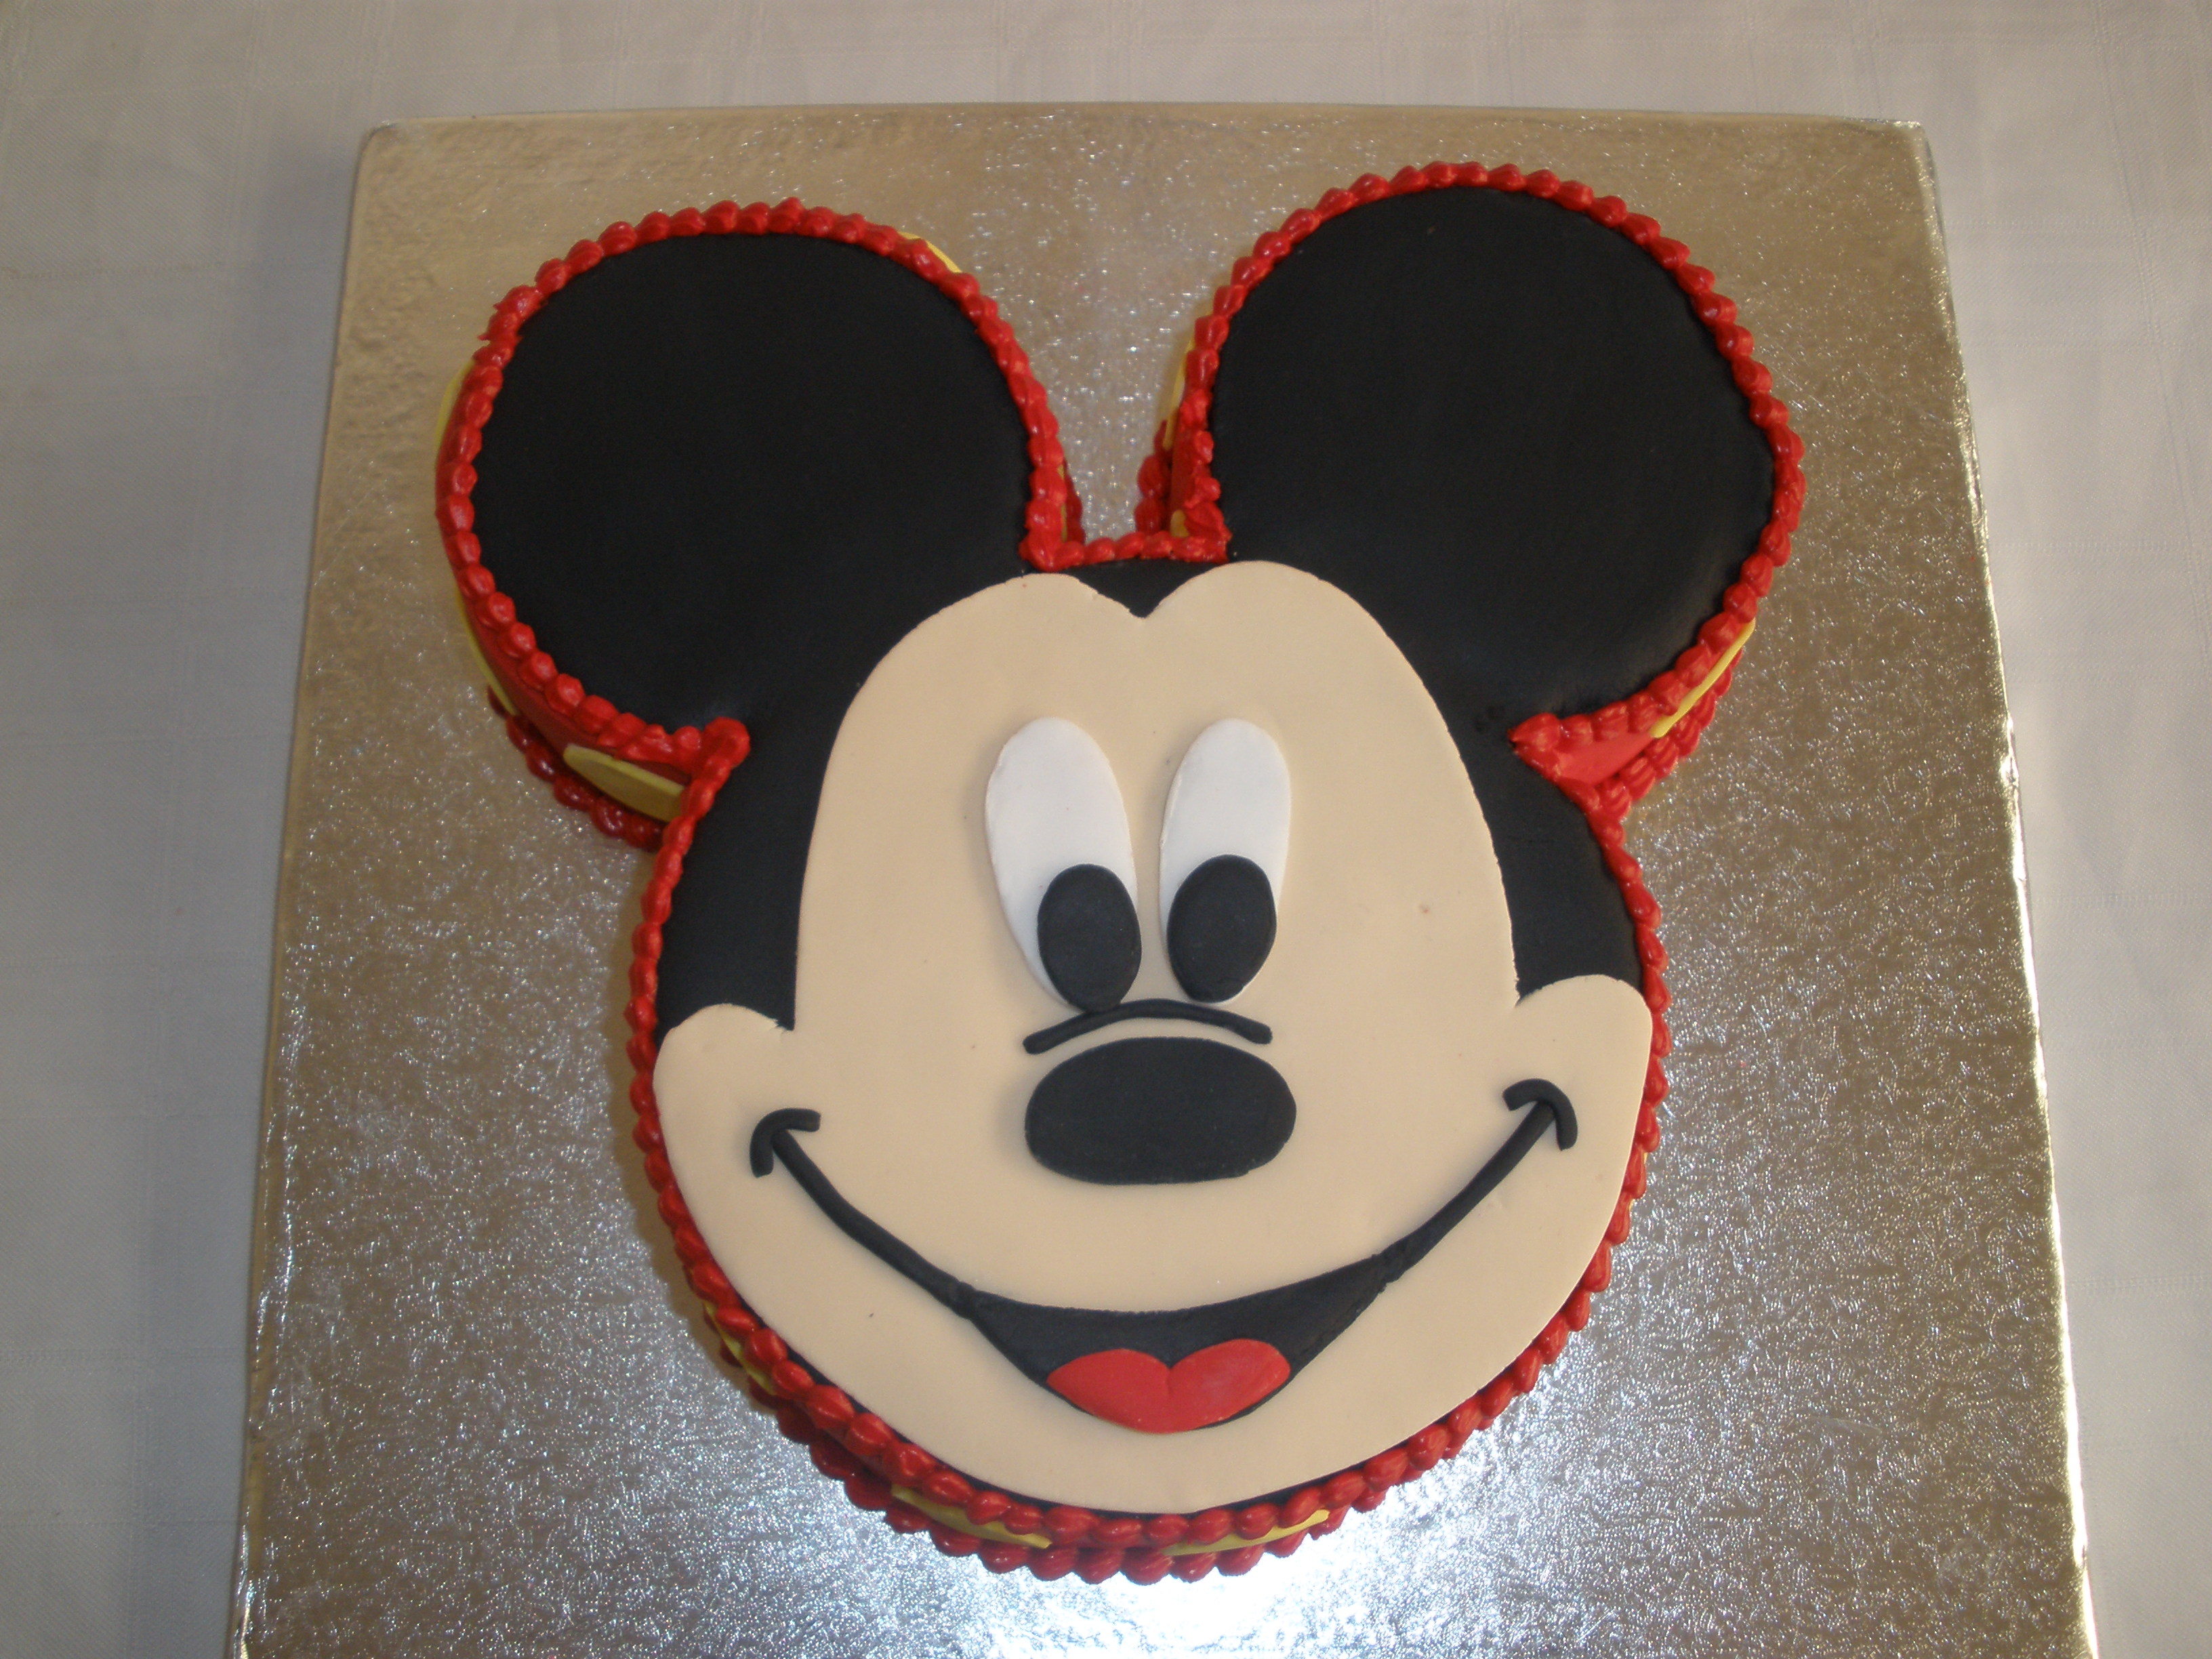 Mickey mouse outline cake ideas and designs for Mickey mouse face template for cake